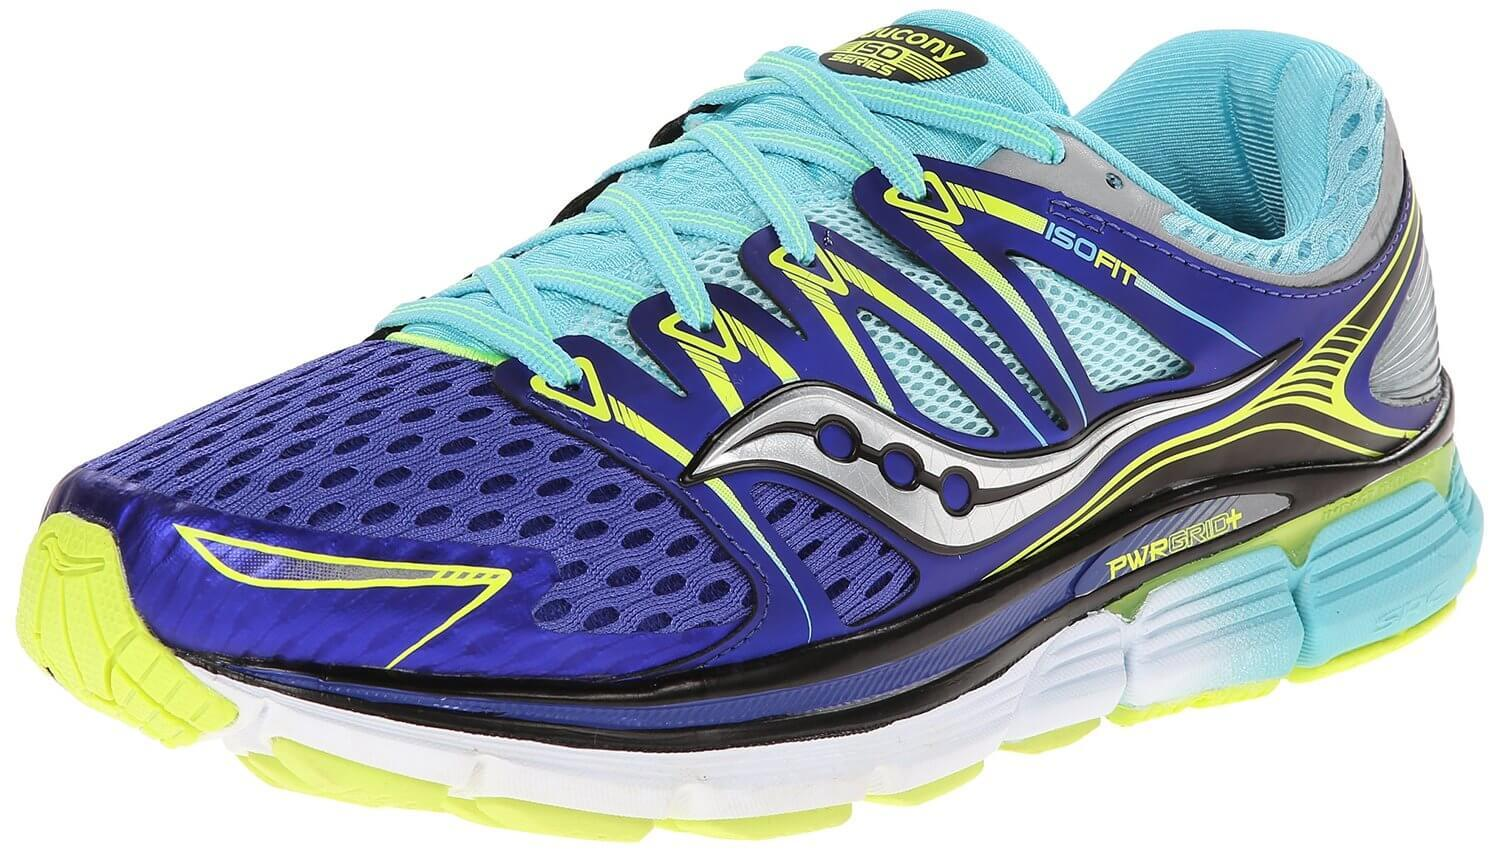 10 Best Custom Running Shoes Reviewed